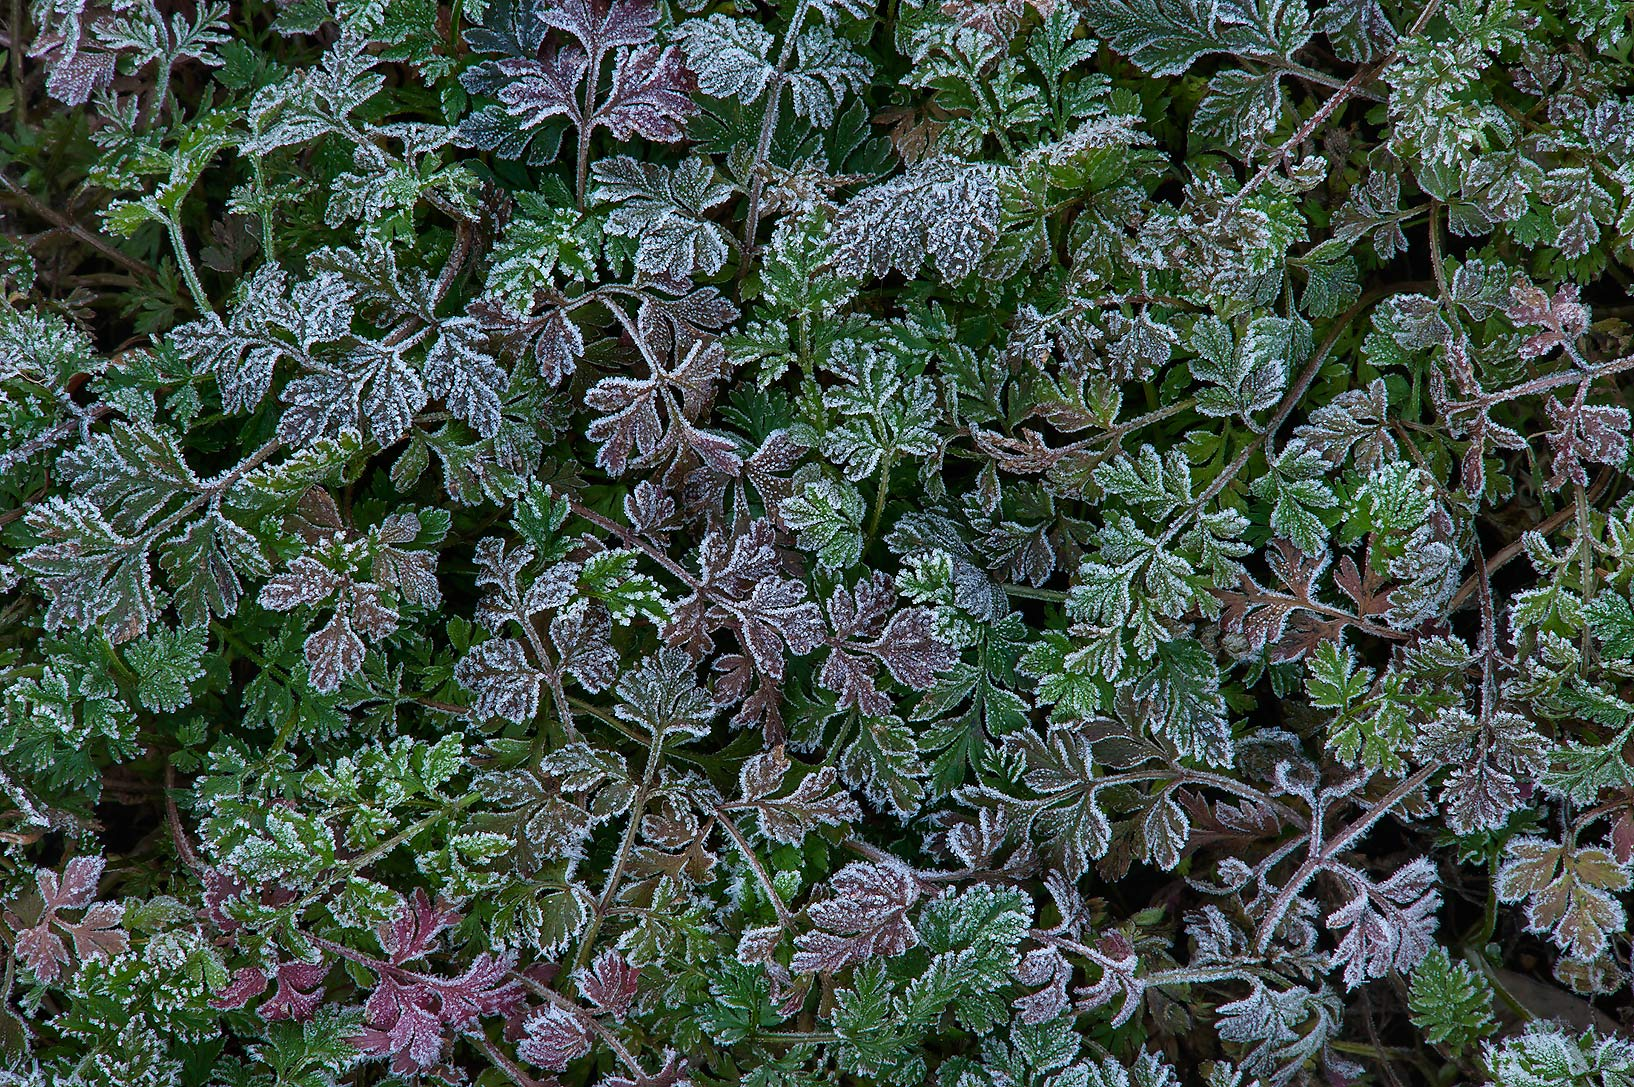 Small leaves in freeze in TAMU Horticultural...M University. College Station, Texas